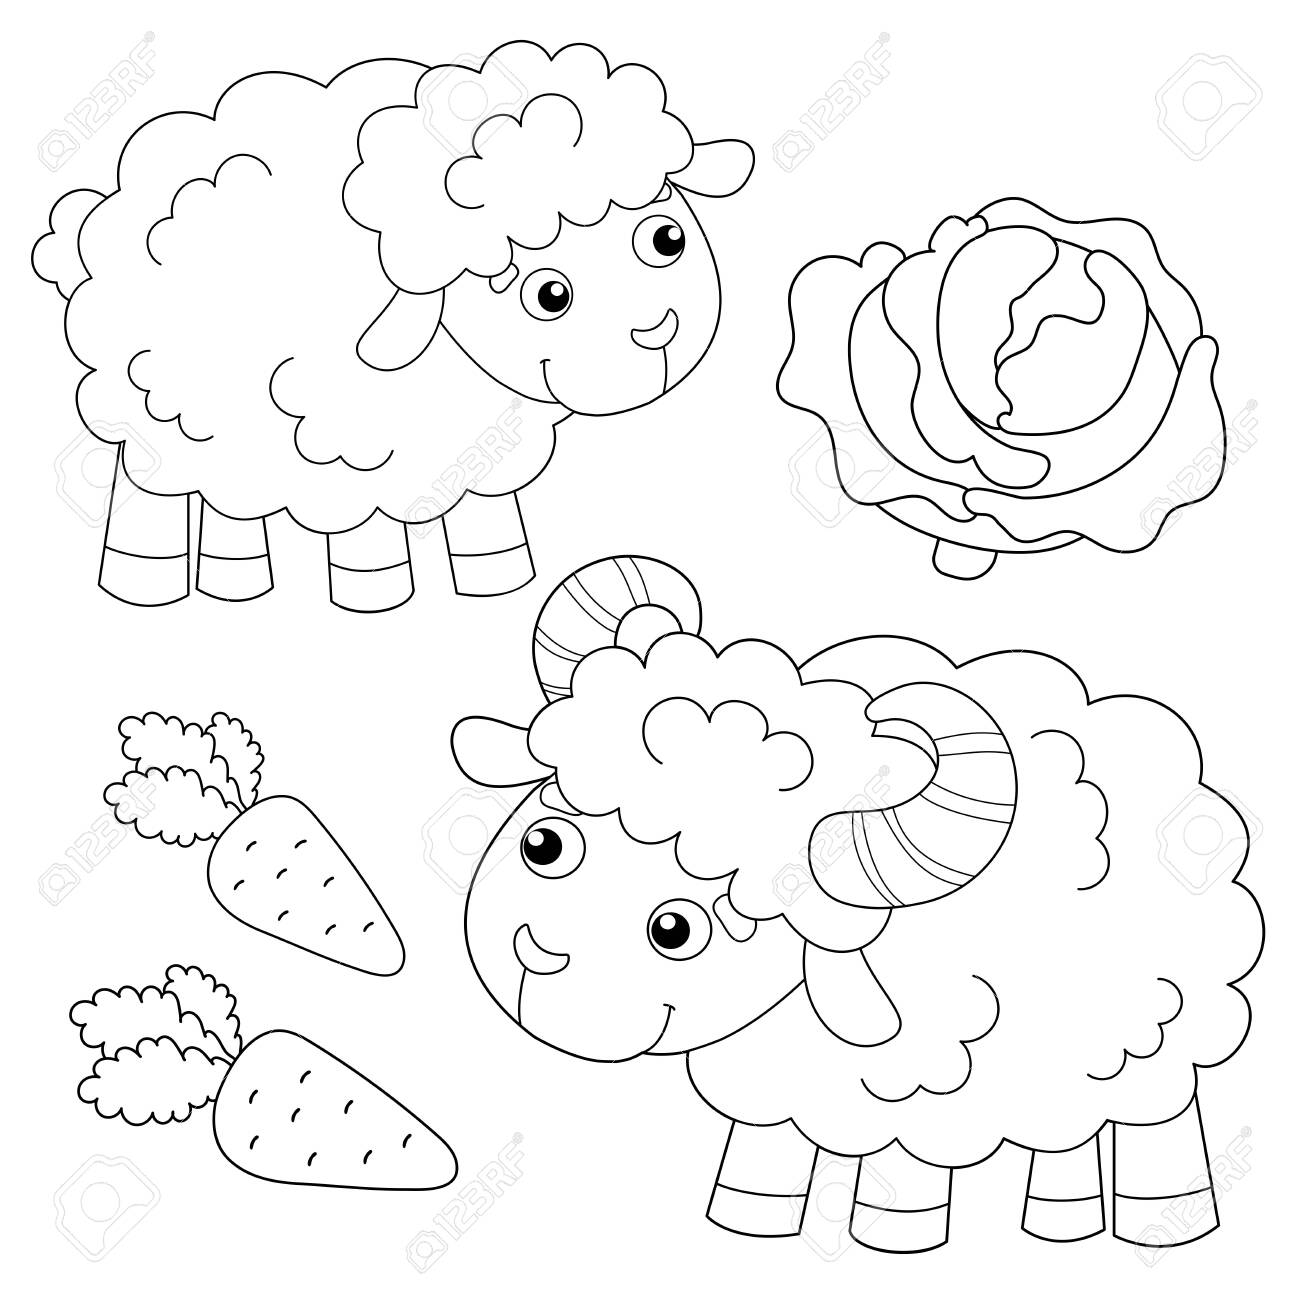 Farm Animals Coloring Pages and Printable Activities 1 | 1300x1300